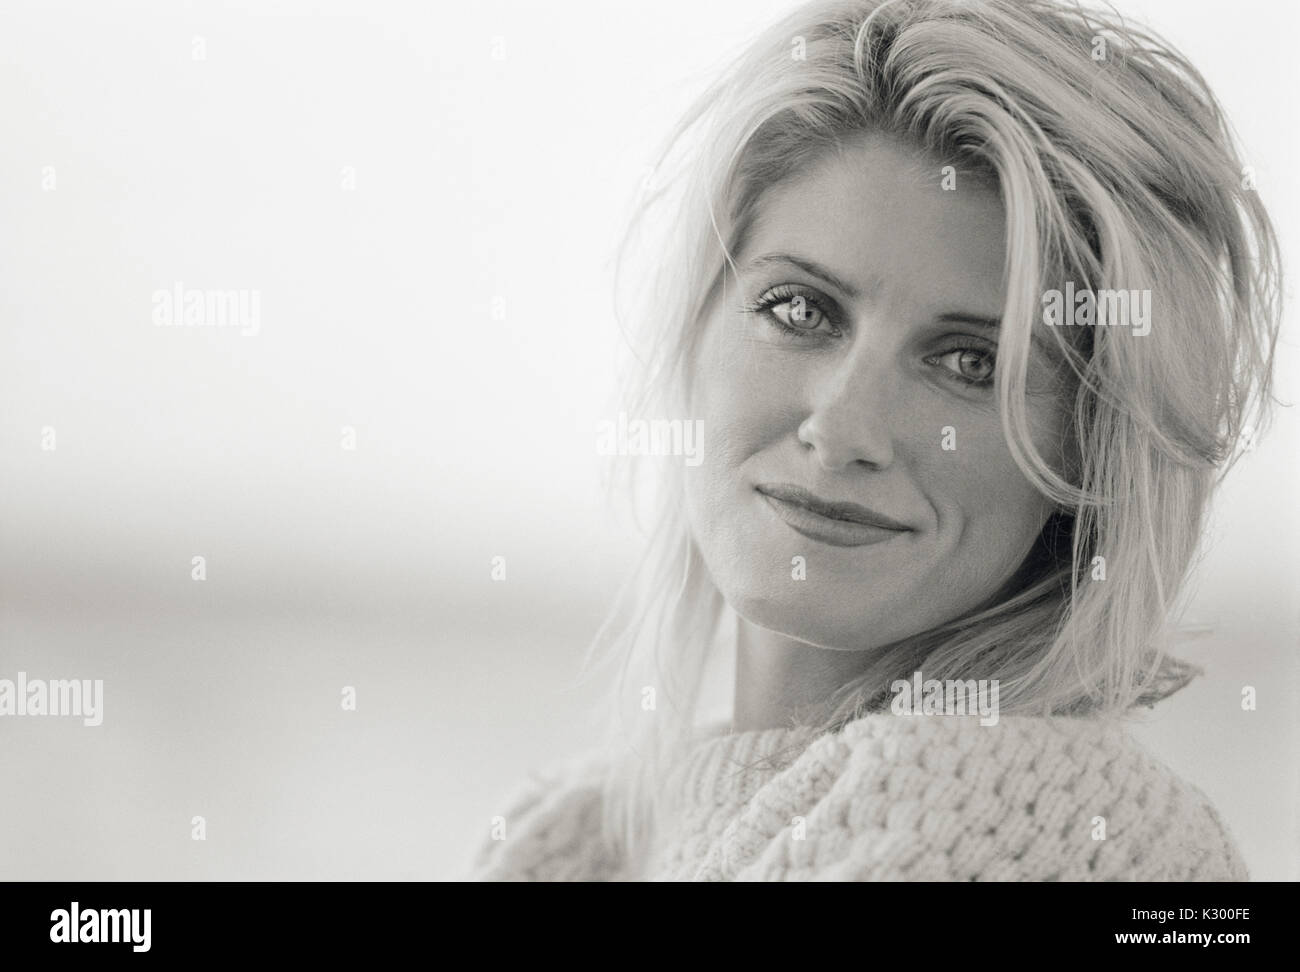 Portrait of a 30s adult woman, black and white. - Stock Image